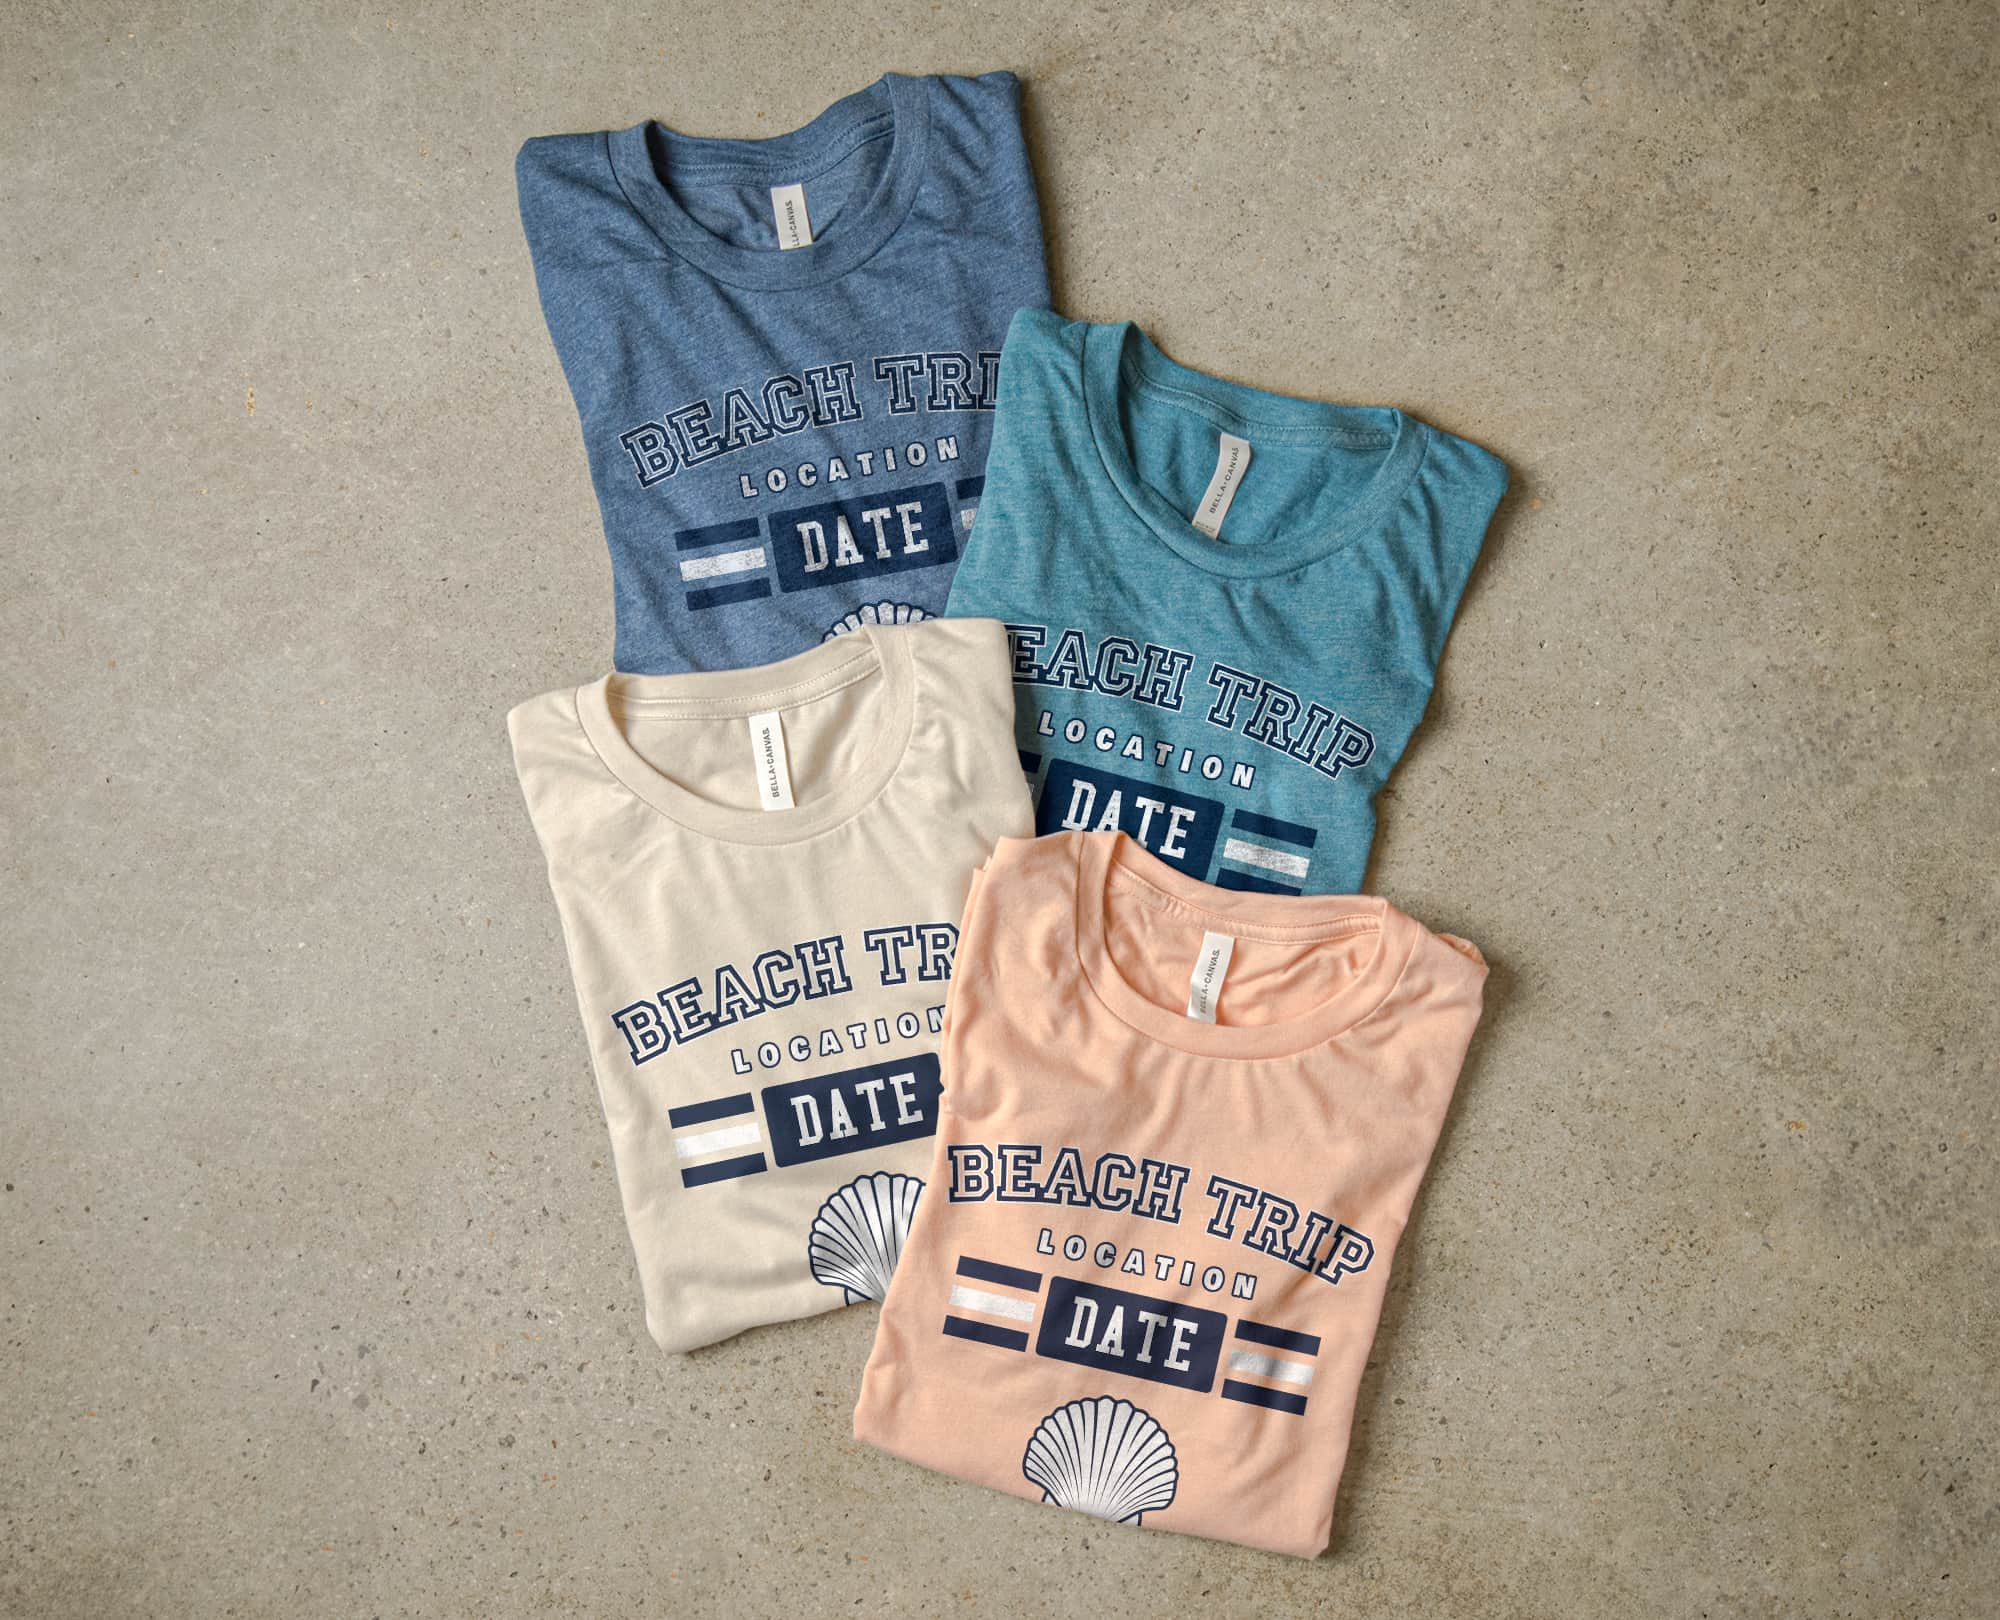 The Bella+Canvas Sueded Tee in four colors with example t-shirt design.